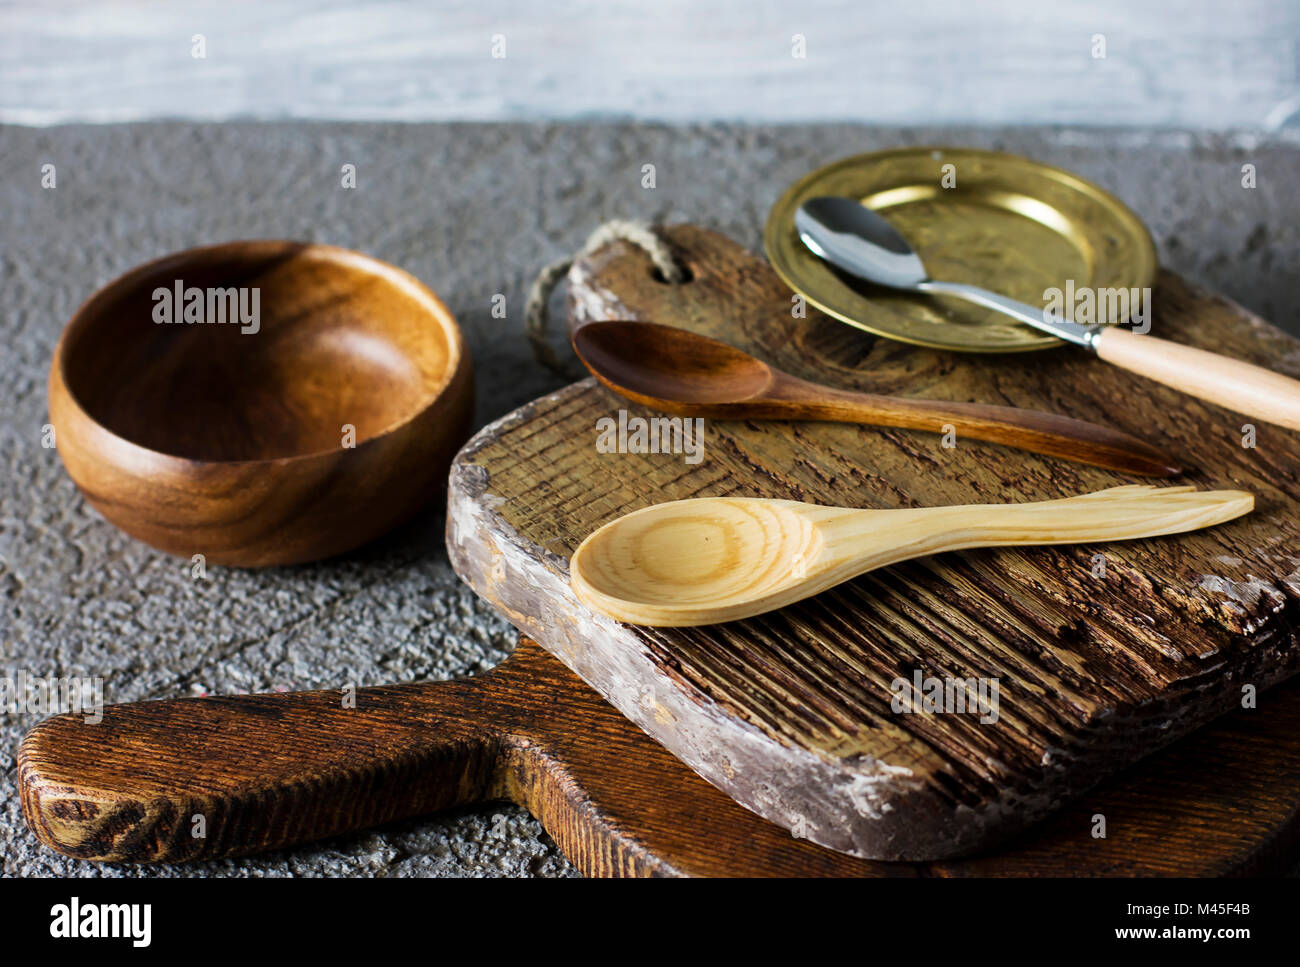 Wooden Cutting Boards On Grey Concrete Background Props For Food Stock Photo Alamy